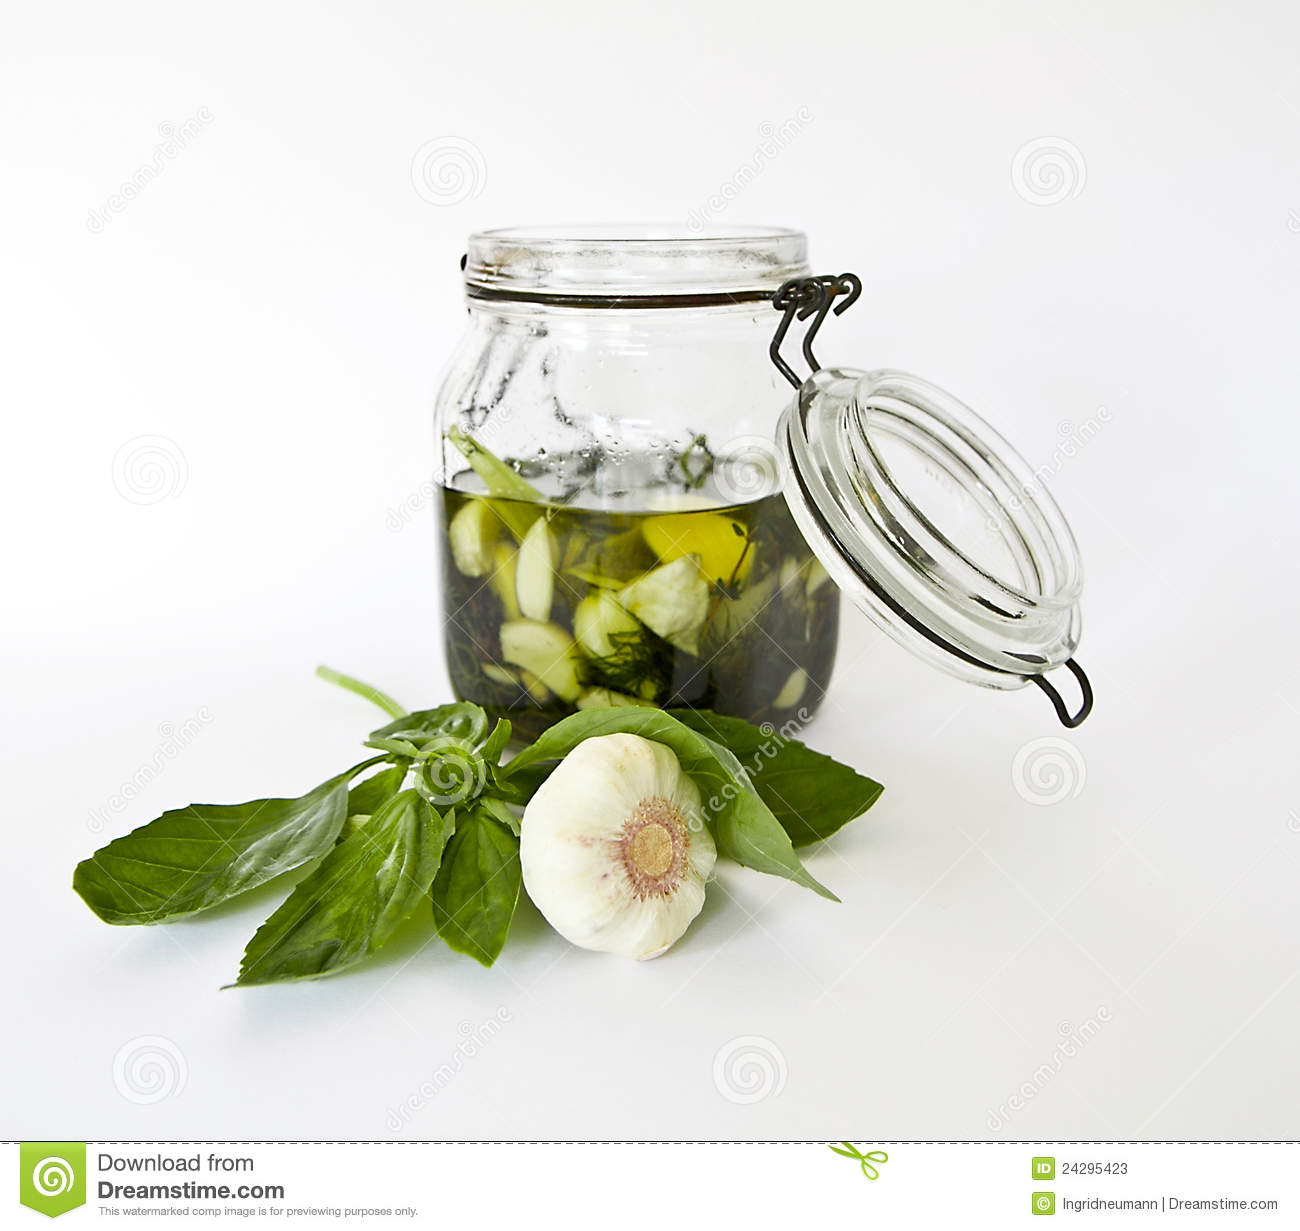 More similar stock images of ` Olive oil with fresh herbs and garlic `